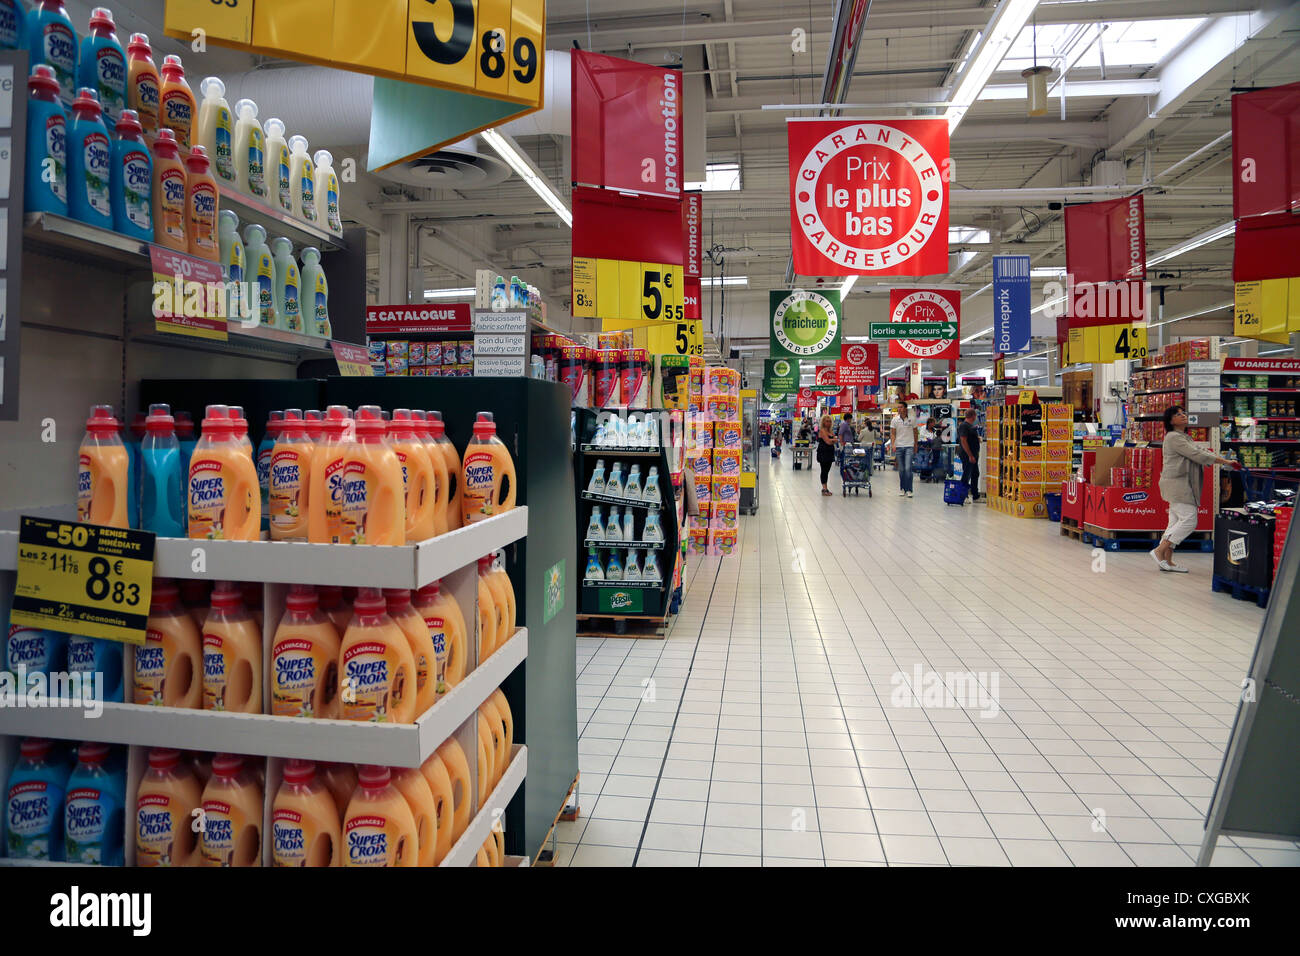 Calais France Cite Europe People Shopping In Carrefour Supermarket - Stock Image